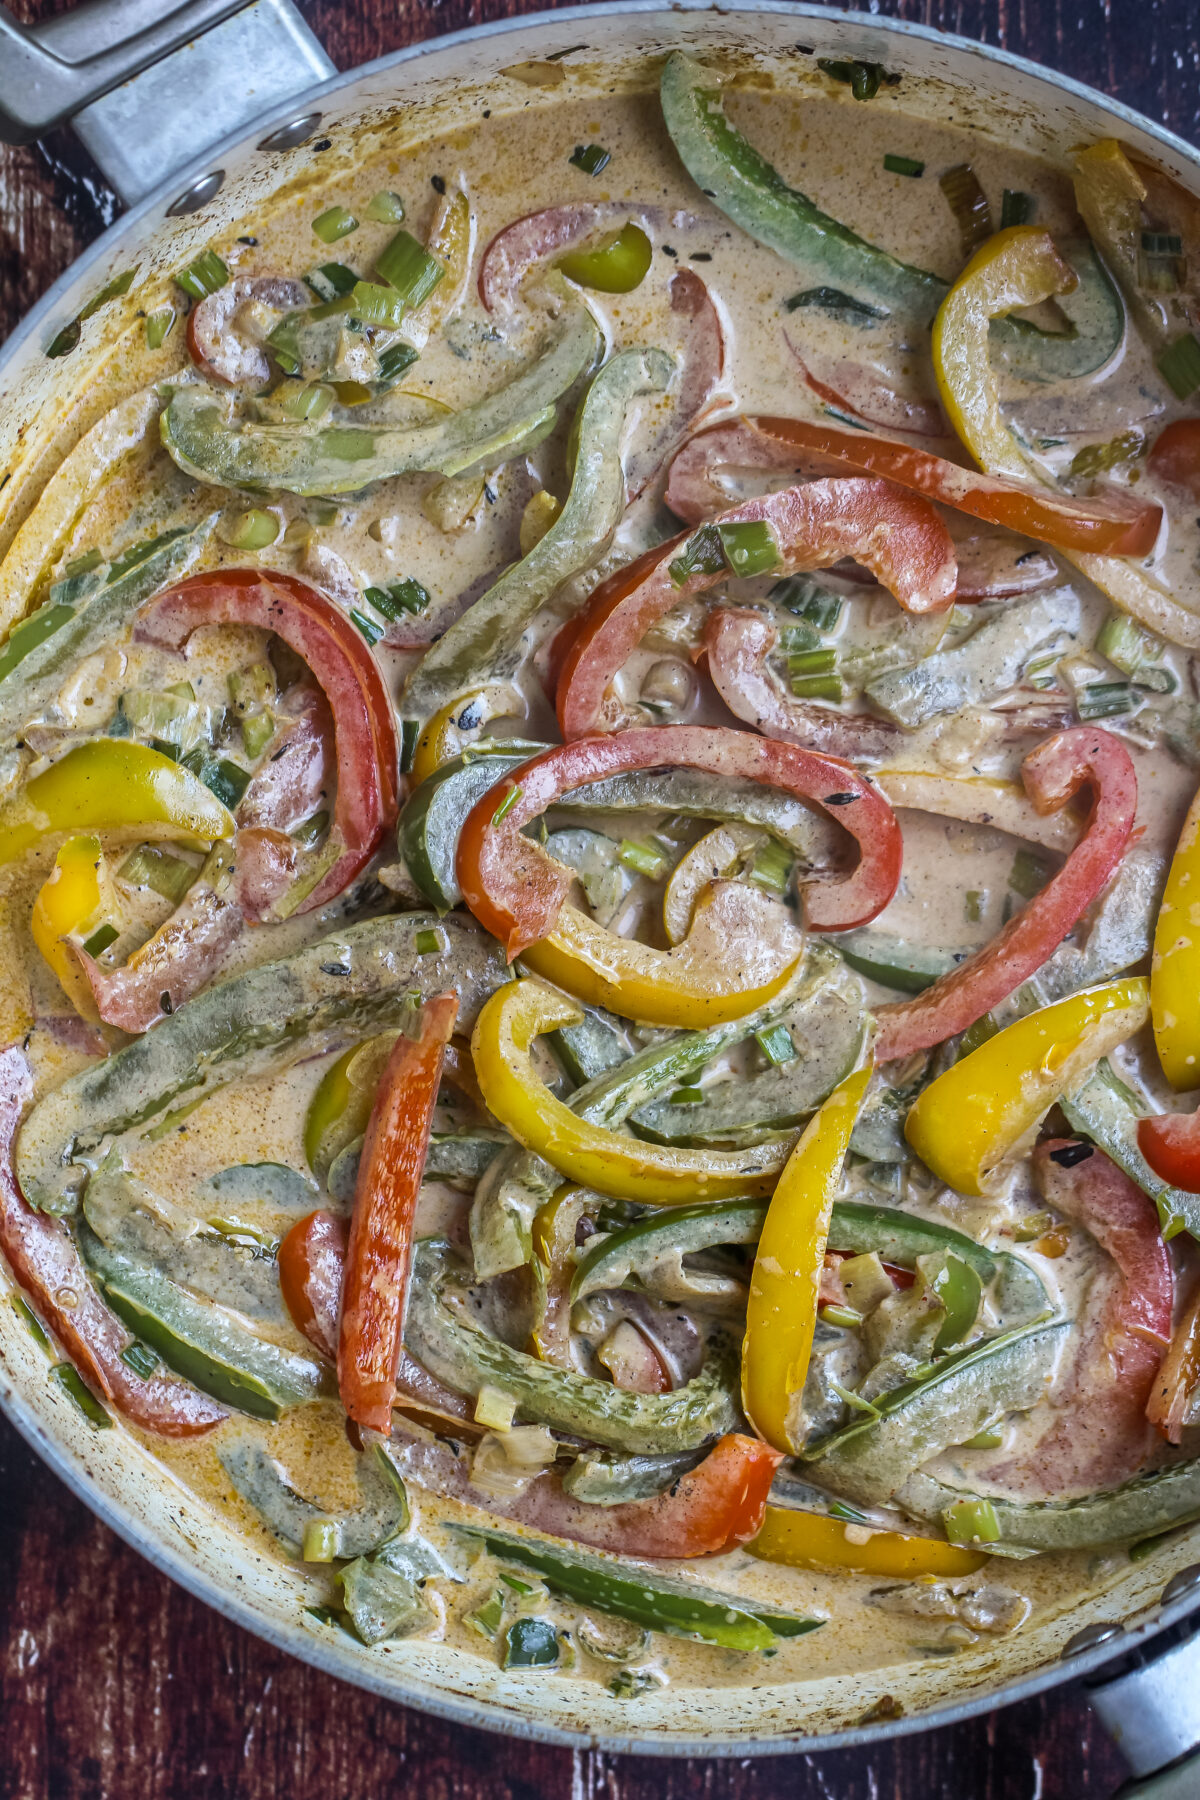 Sauteed peppers in cream sauce.